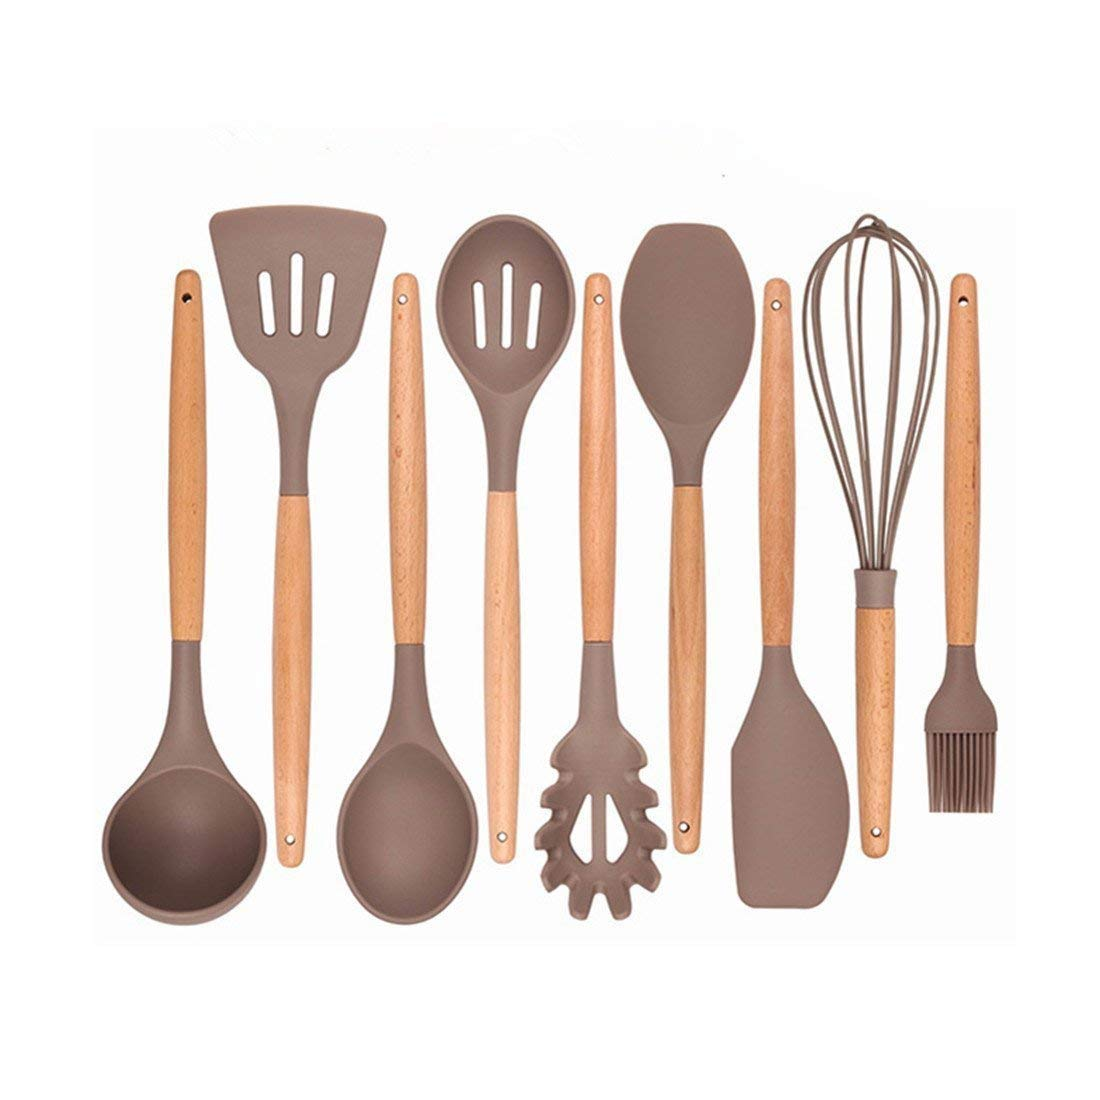 SODIAL Kitchen Utensils - Cooking Utensil - 9-piece Silicone Utensil Set Spatula Set with Beech Wood Handle - for Nonstick Pots Pans Utensil Set - Kitchen Tools and Gadgets (utensil set)